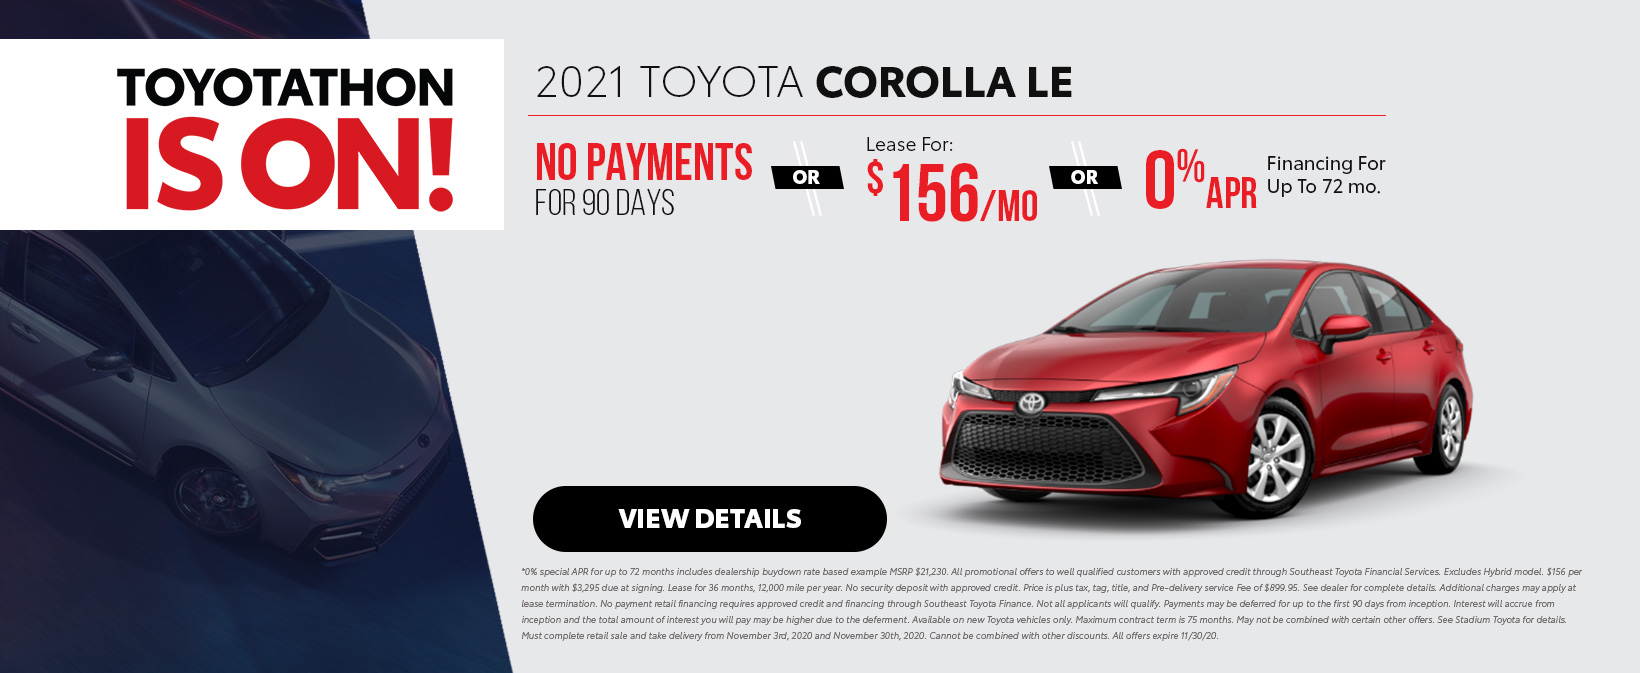 2021 Toyota Corolla Offers